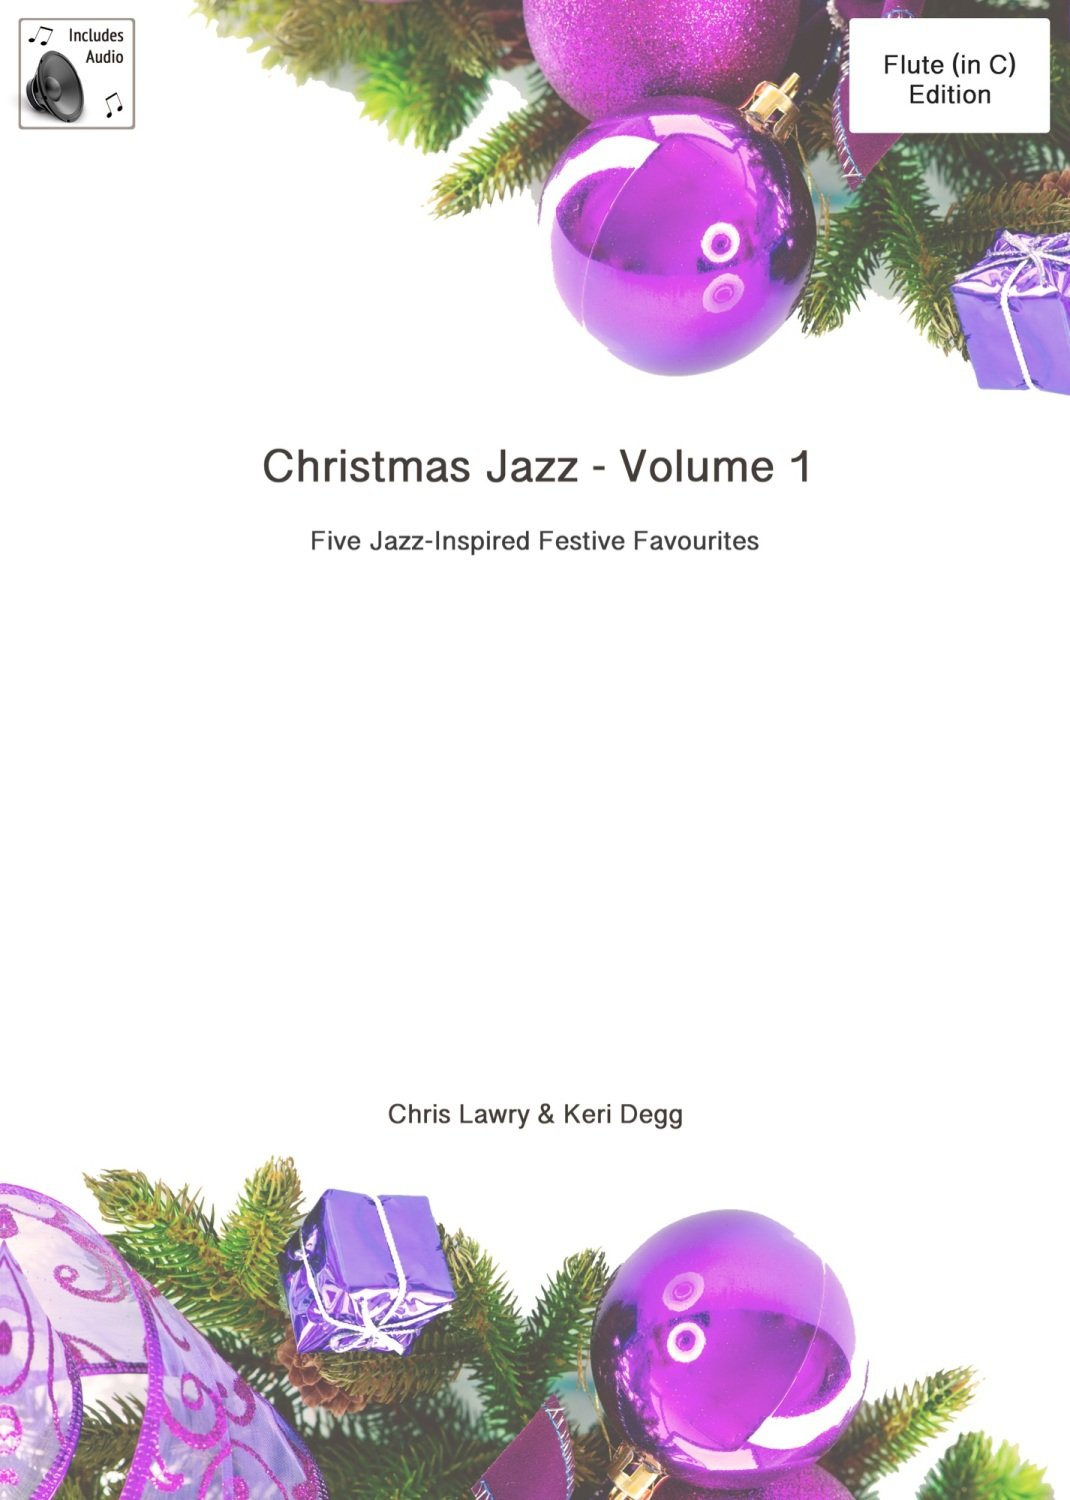 Christmas Jazz for Flute (in C) Volume 1. Printed book/part with audio trac